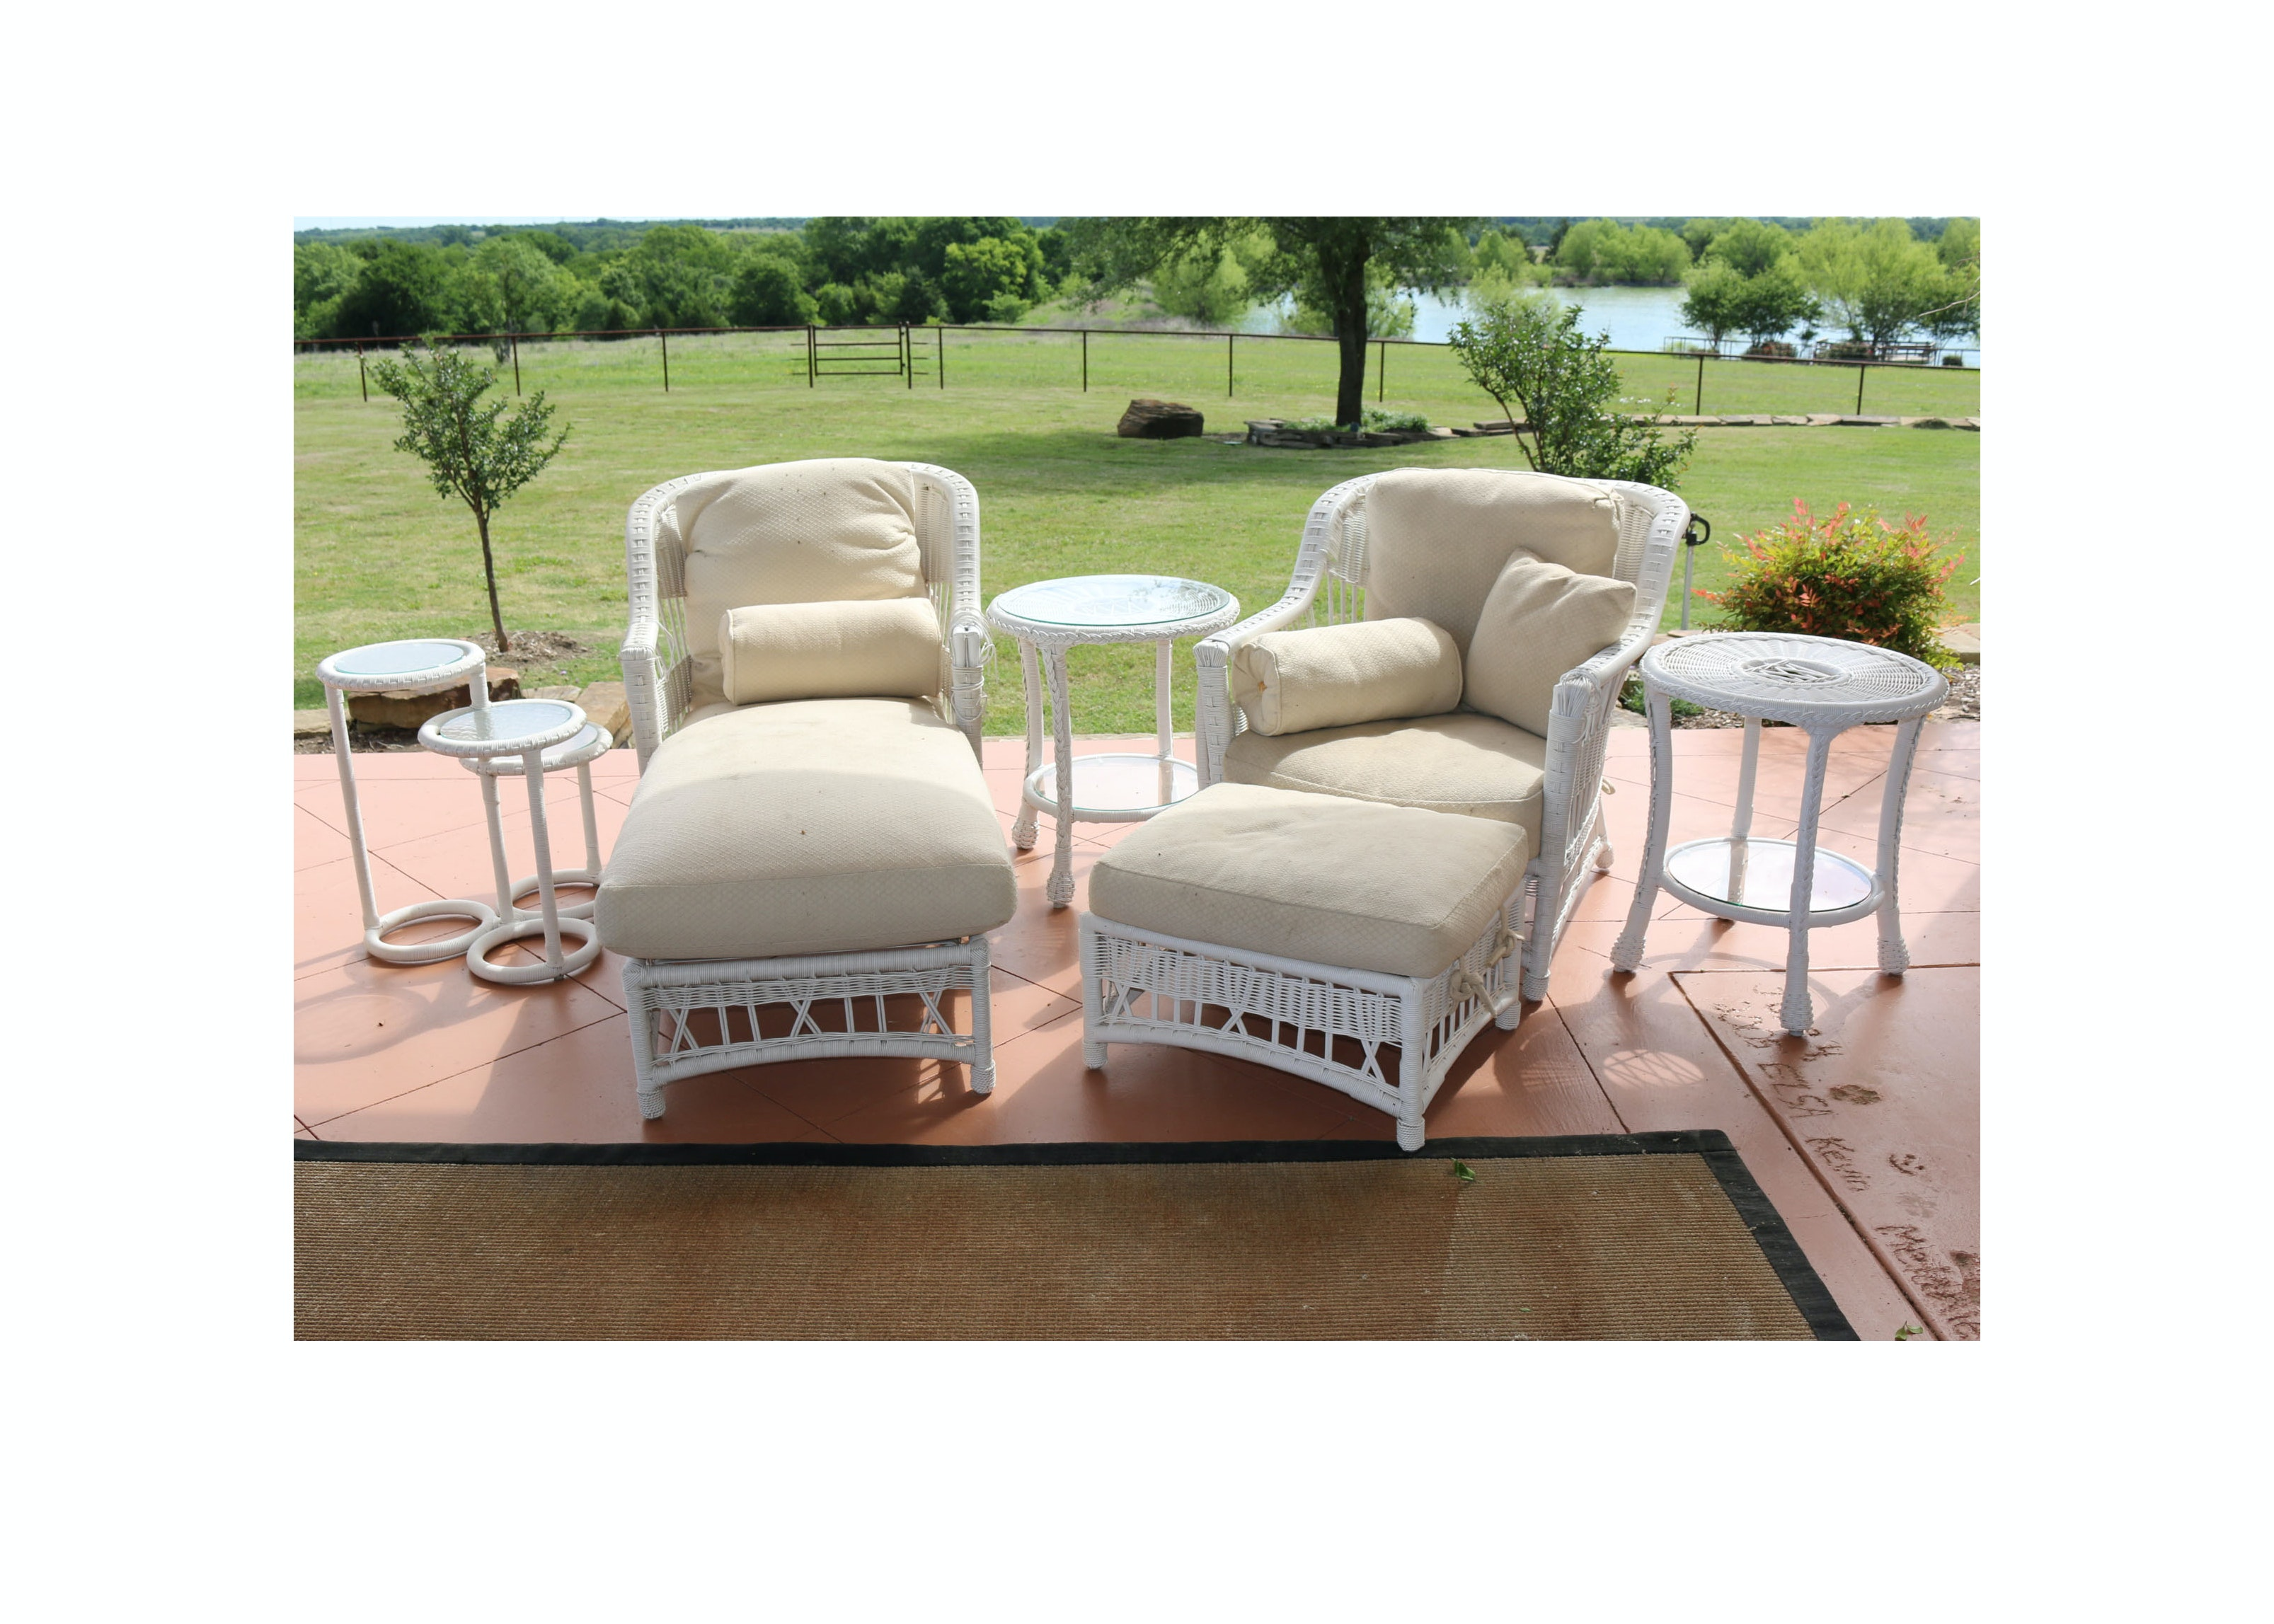 Faux-Wicker Patio Furniture